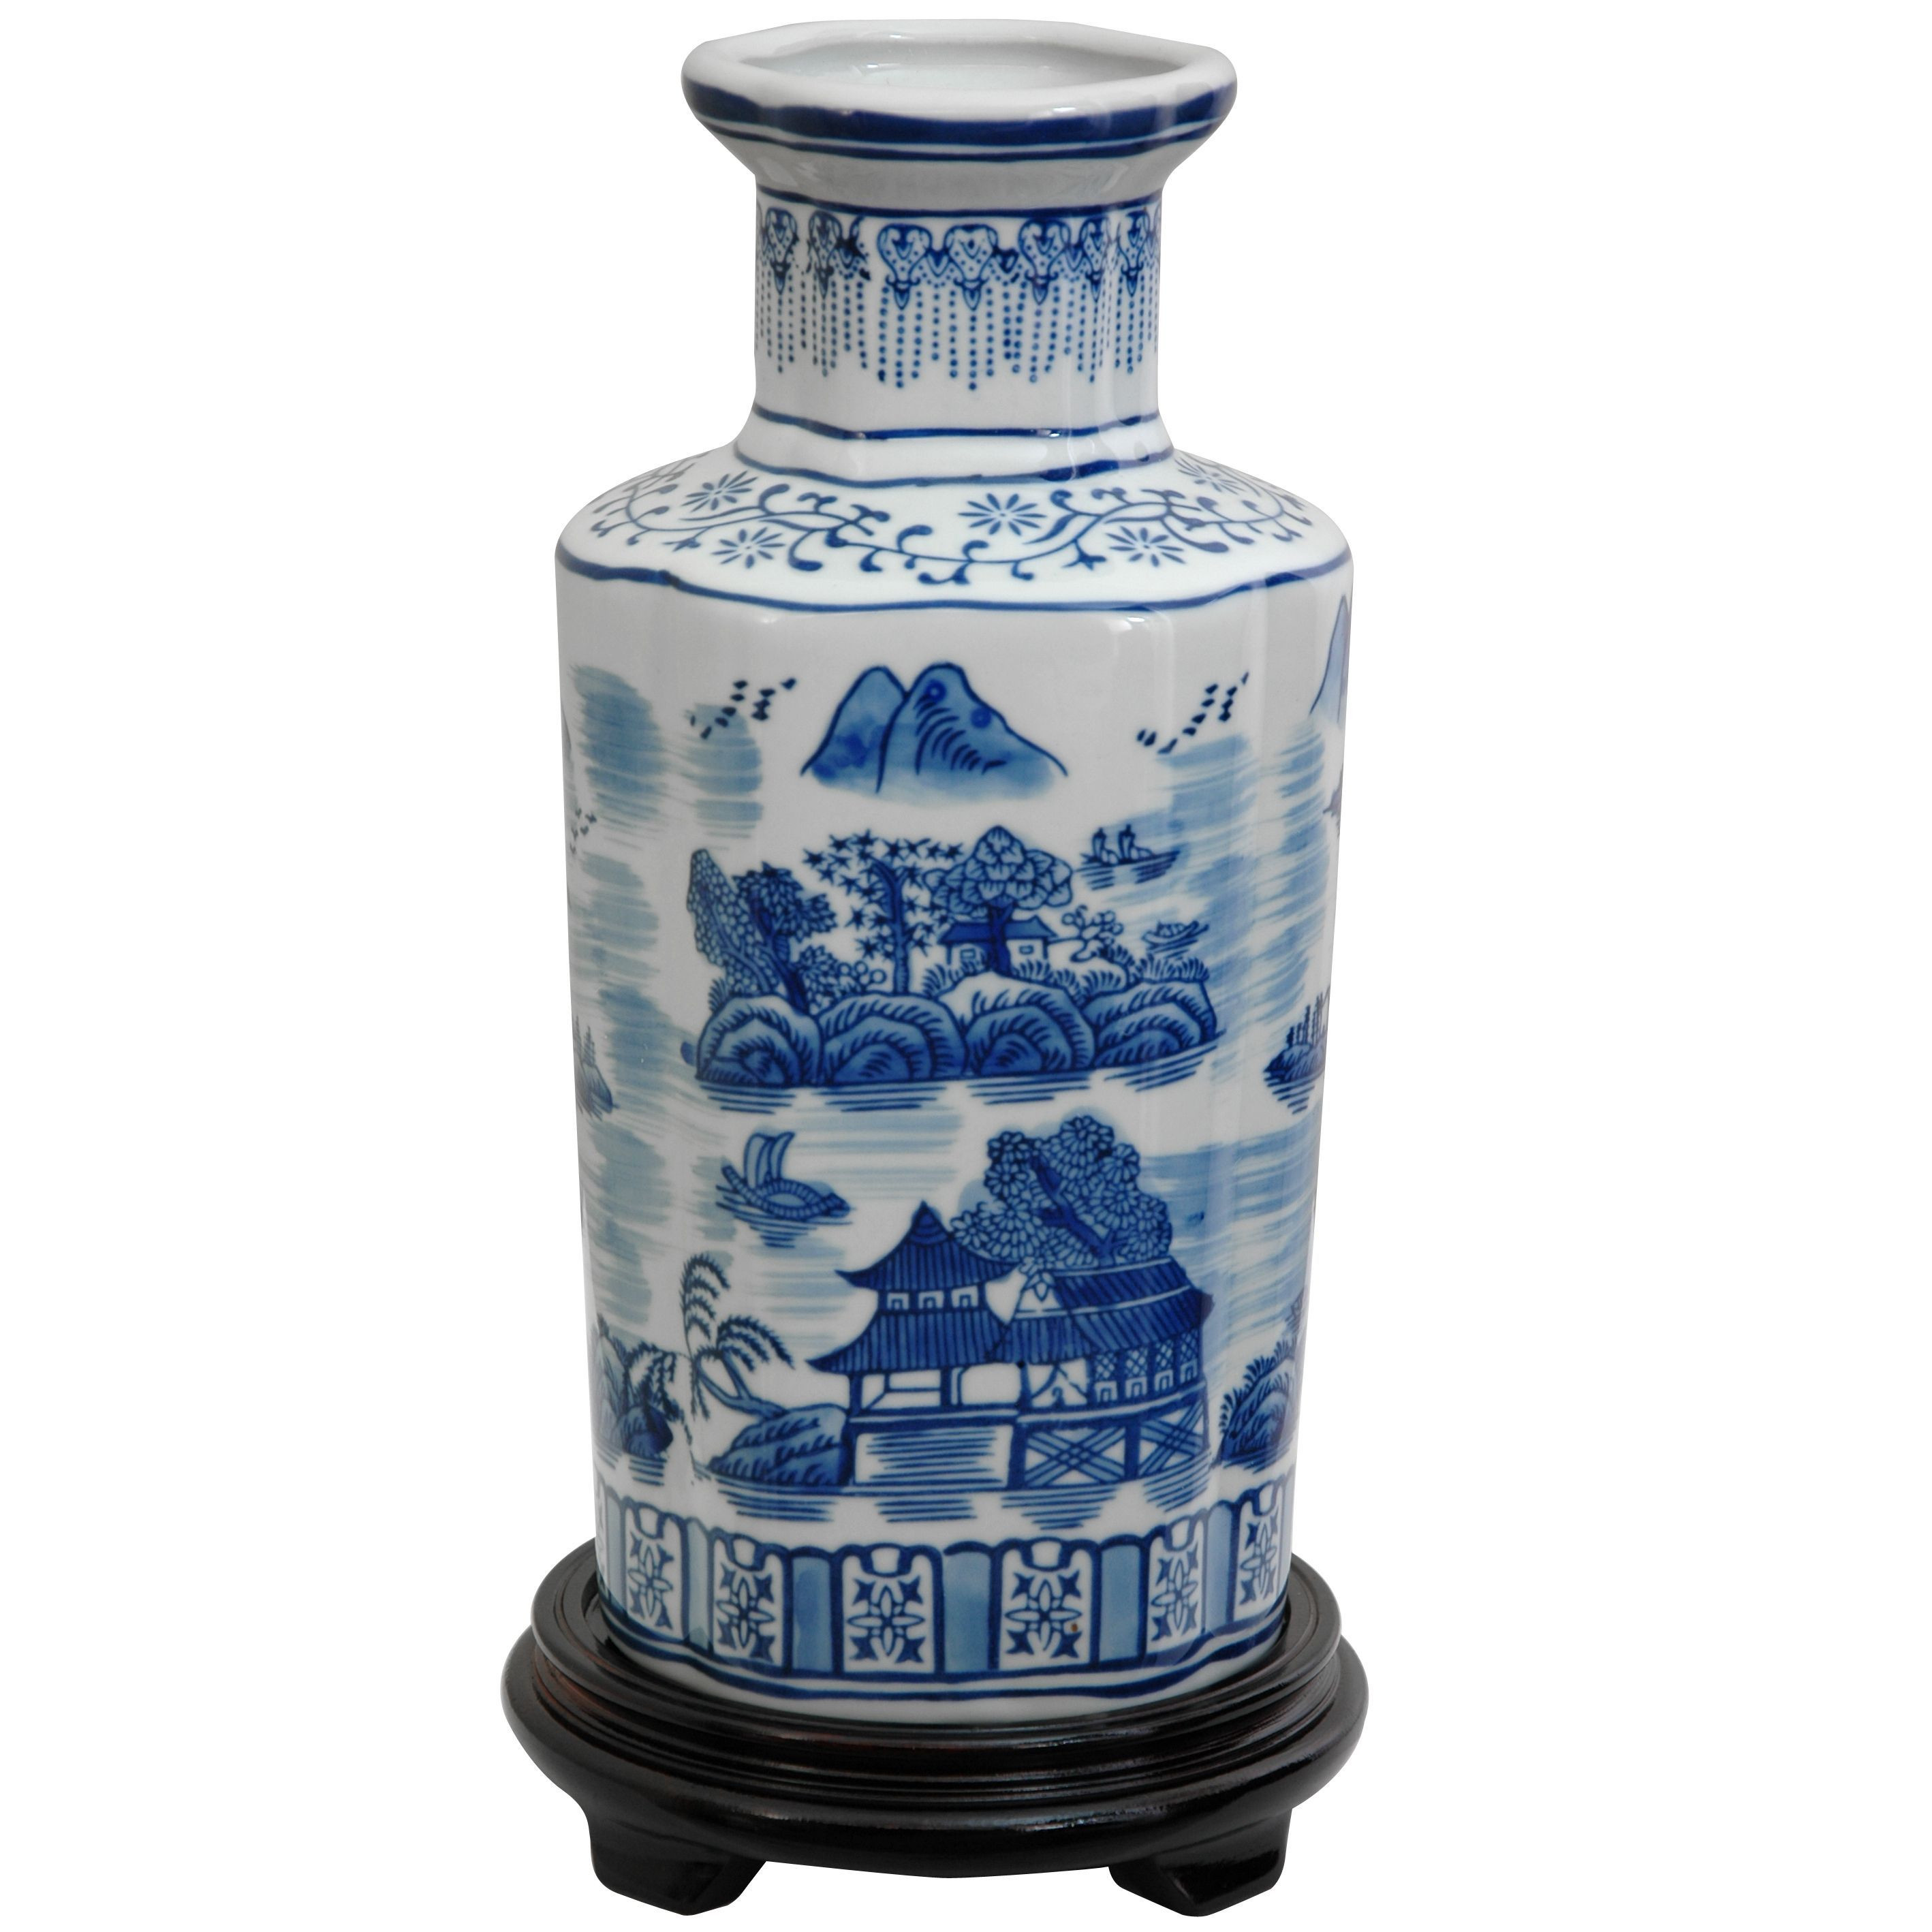 chinese vase with stand of handmade porcelain 12 inch blue and white landscape vase 12 in handmade porcelain 12 inch blue and white landscape vase china